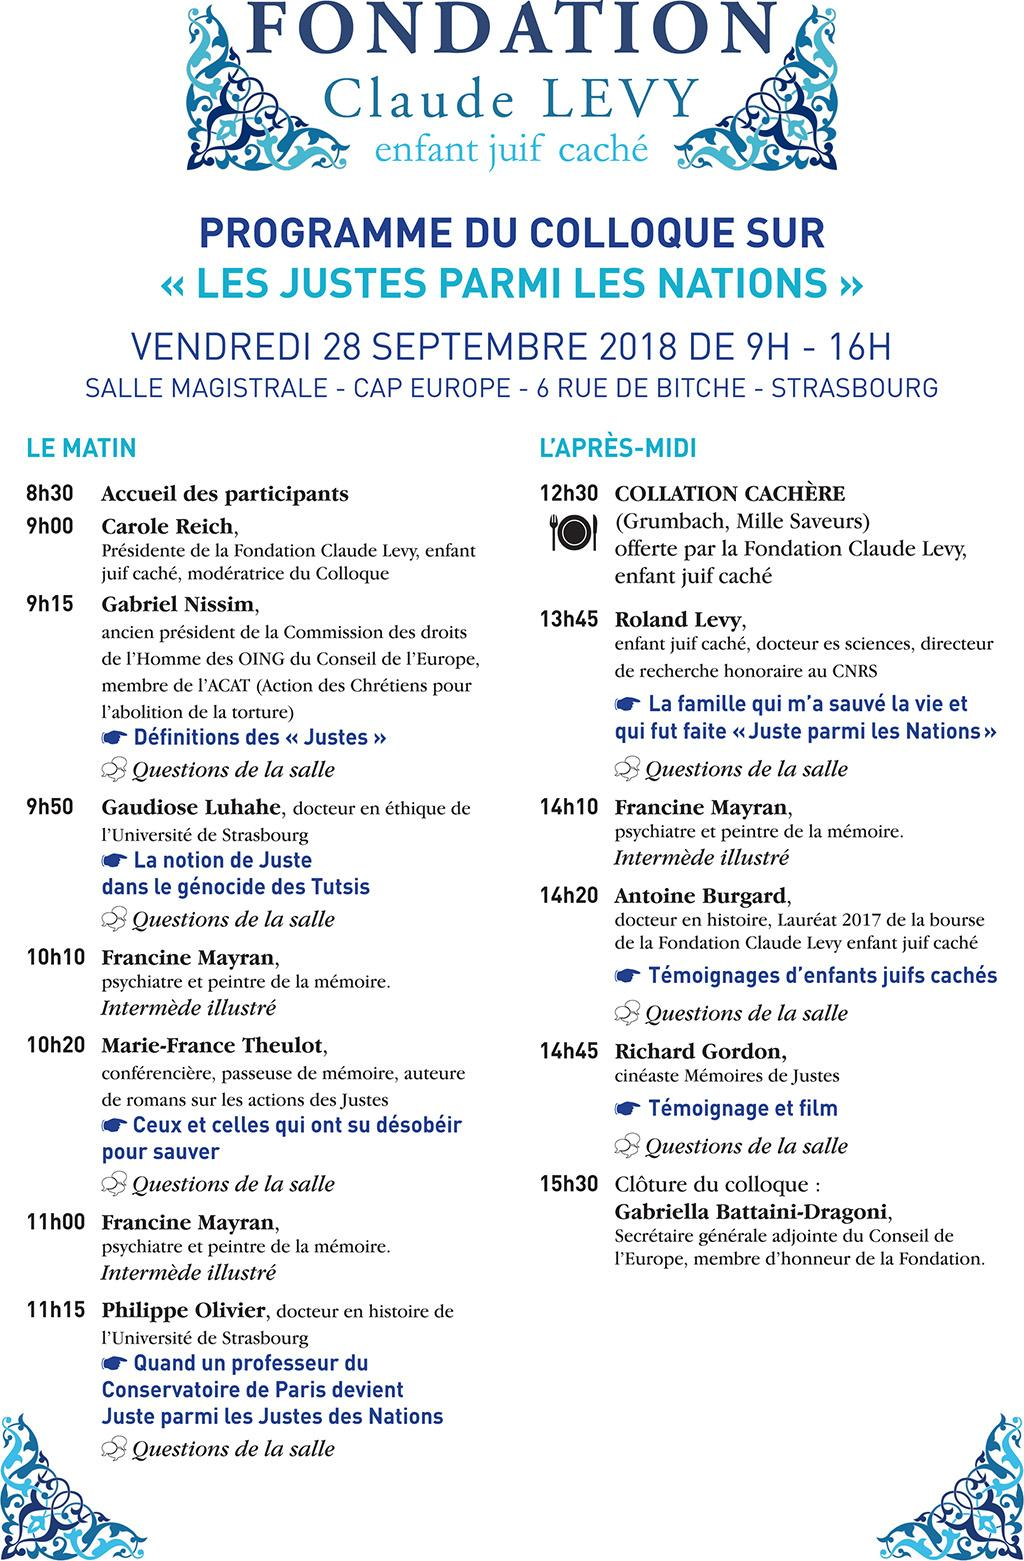 STRASBOURG. Cap Europe. Colloque